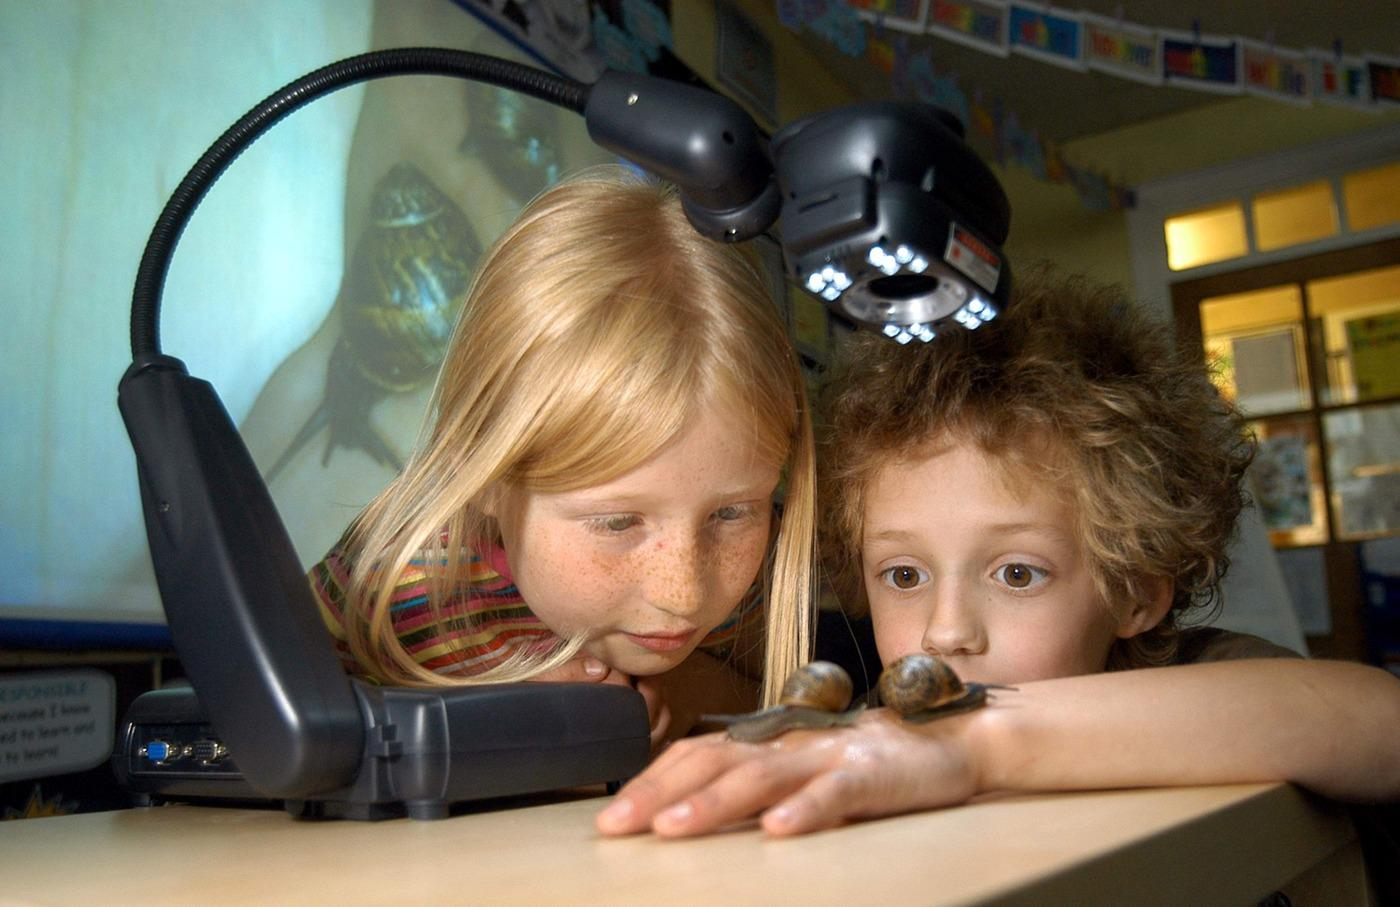 audio visual solutions for schools including visualisers